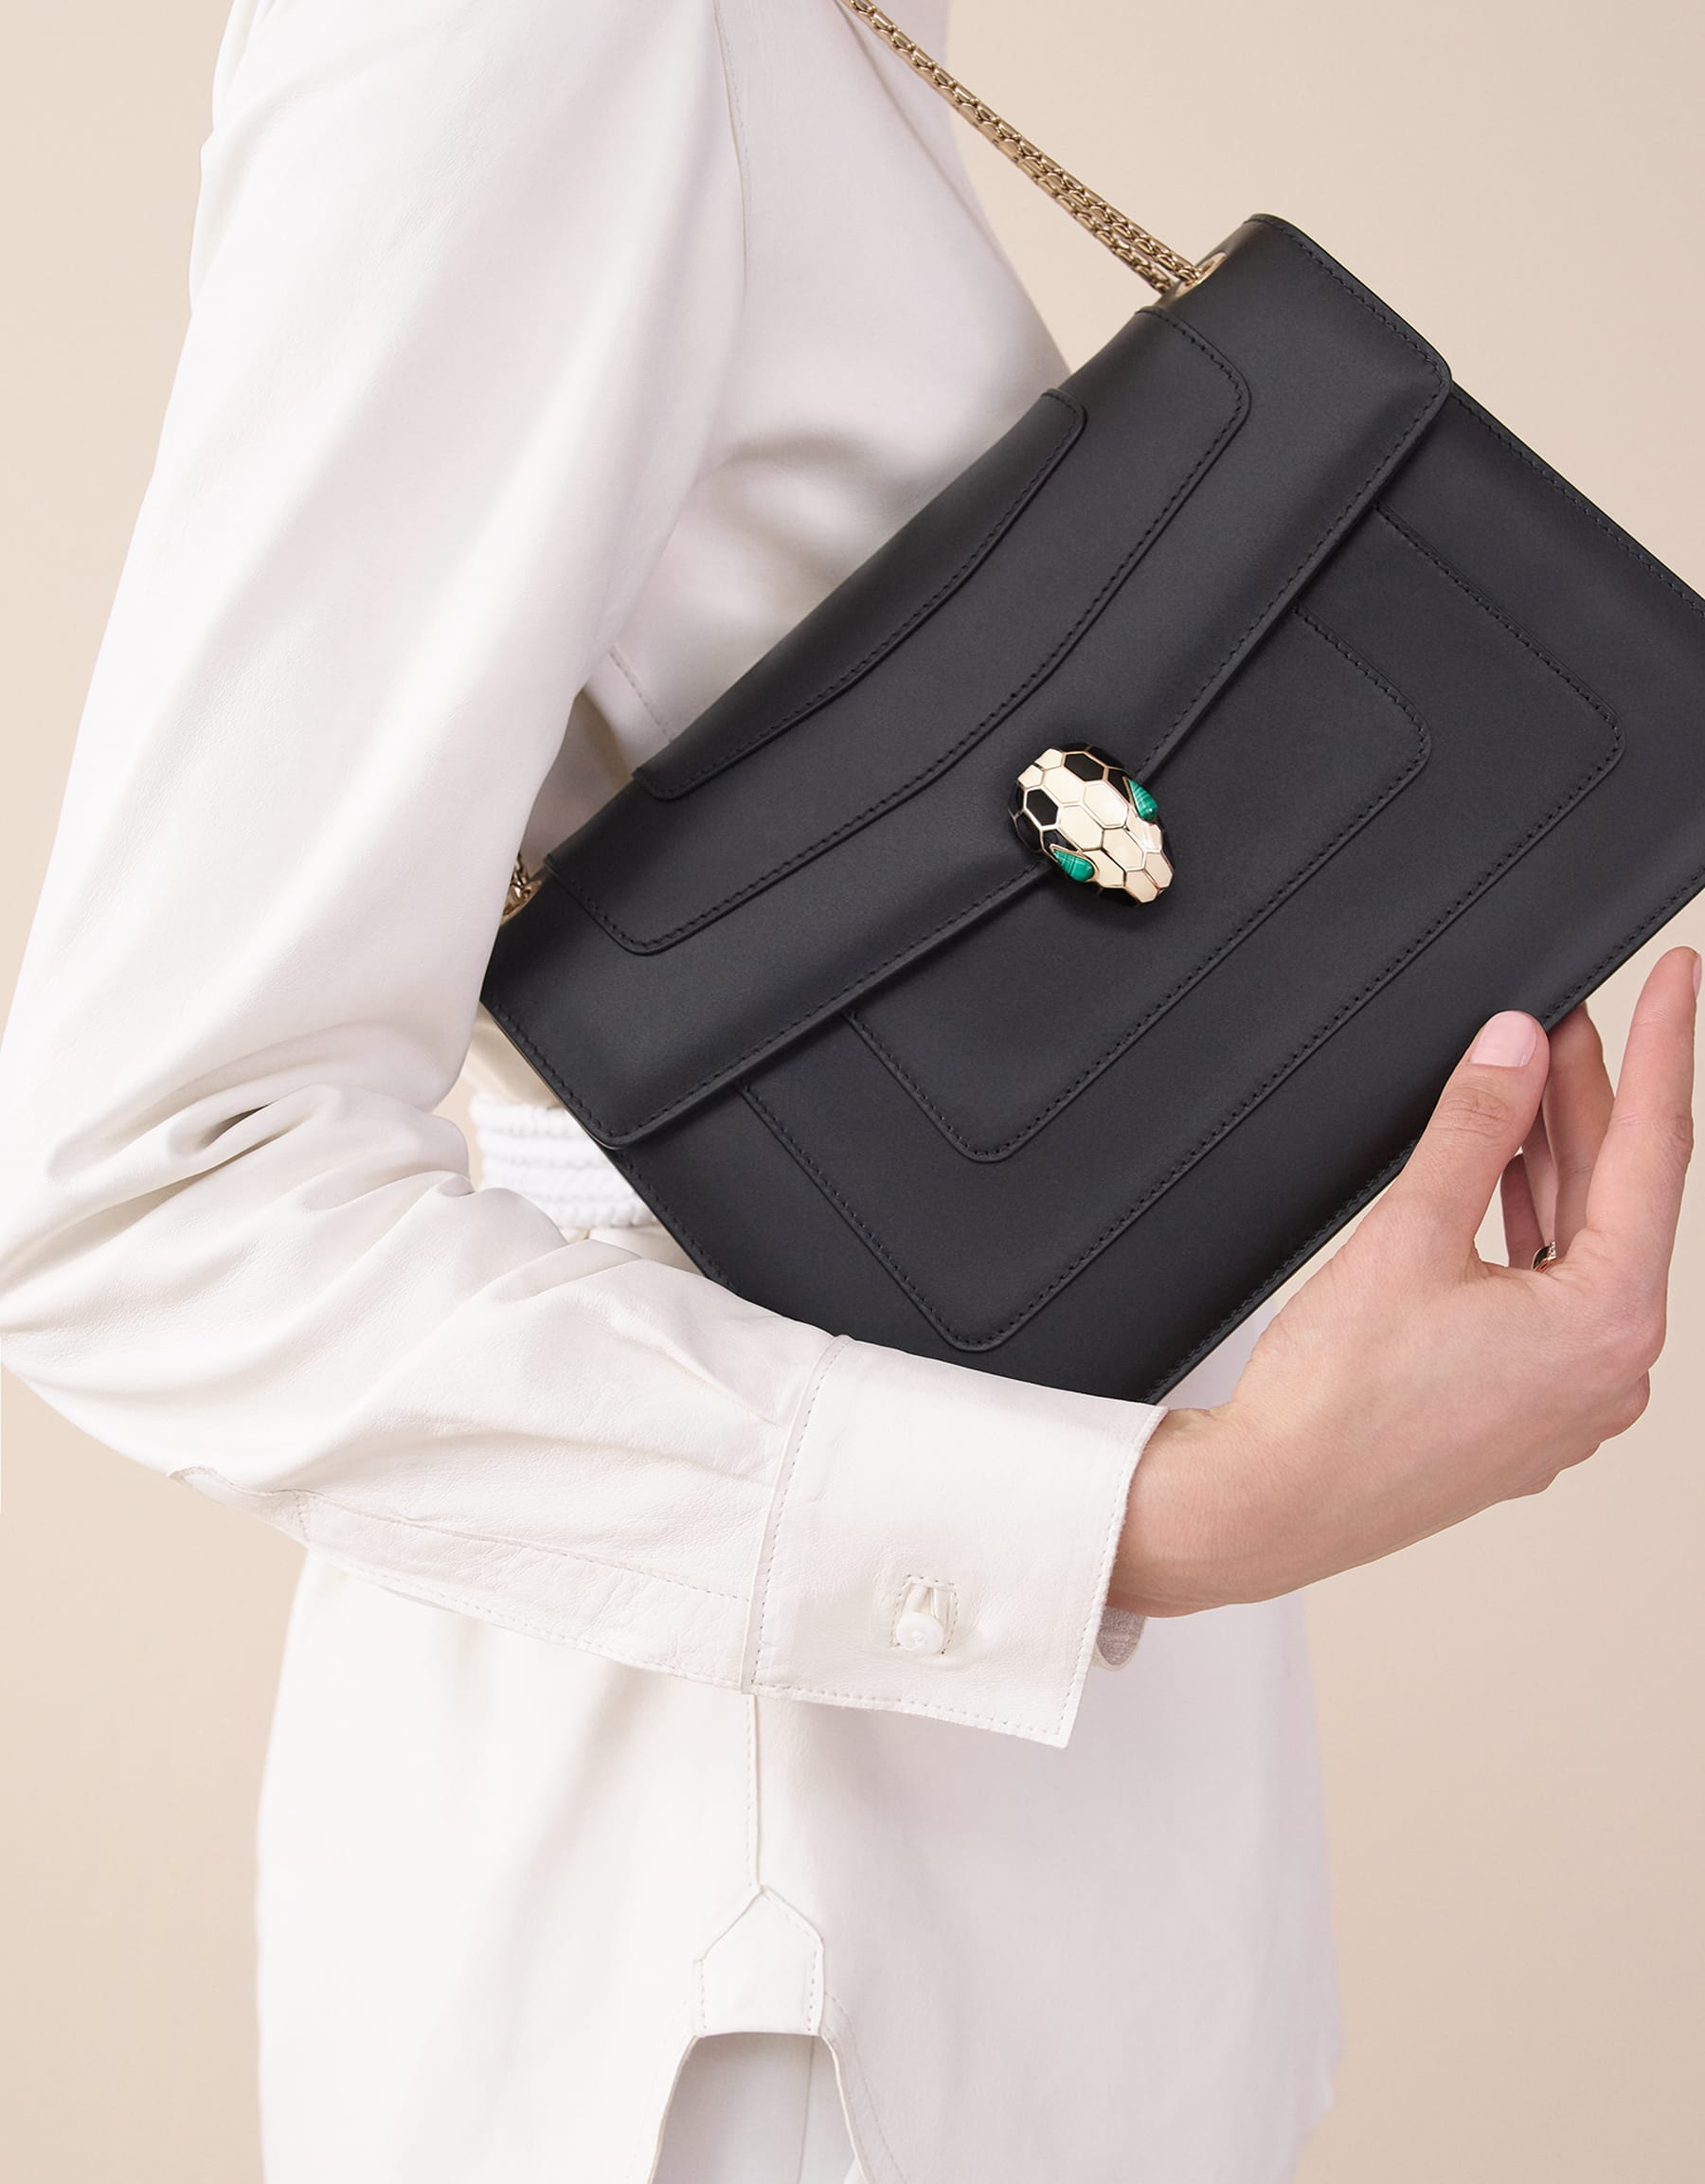 Black calf leather shoulder bag with brass light gold plated black and white enamel Serpenti head closure with malachite eyes. 521-CLa image 5